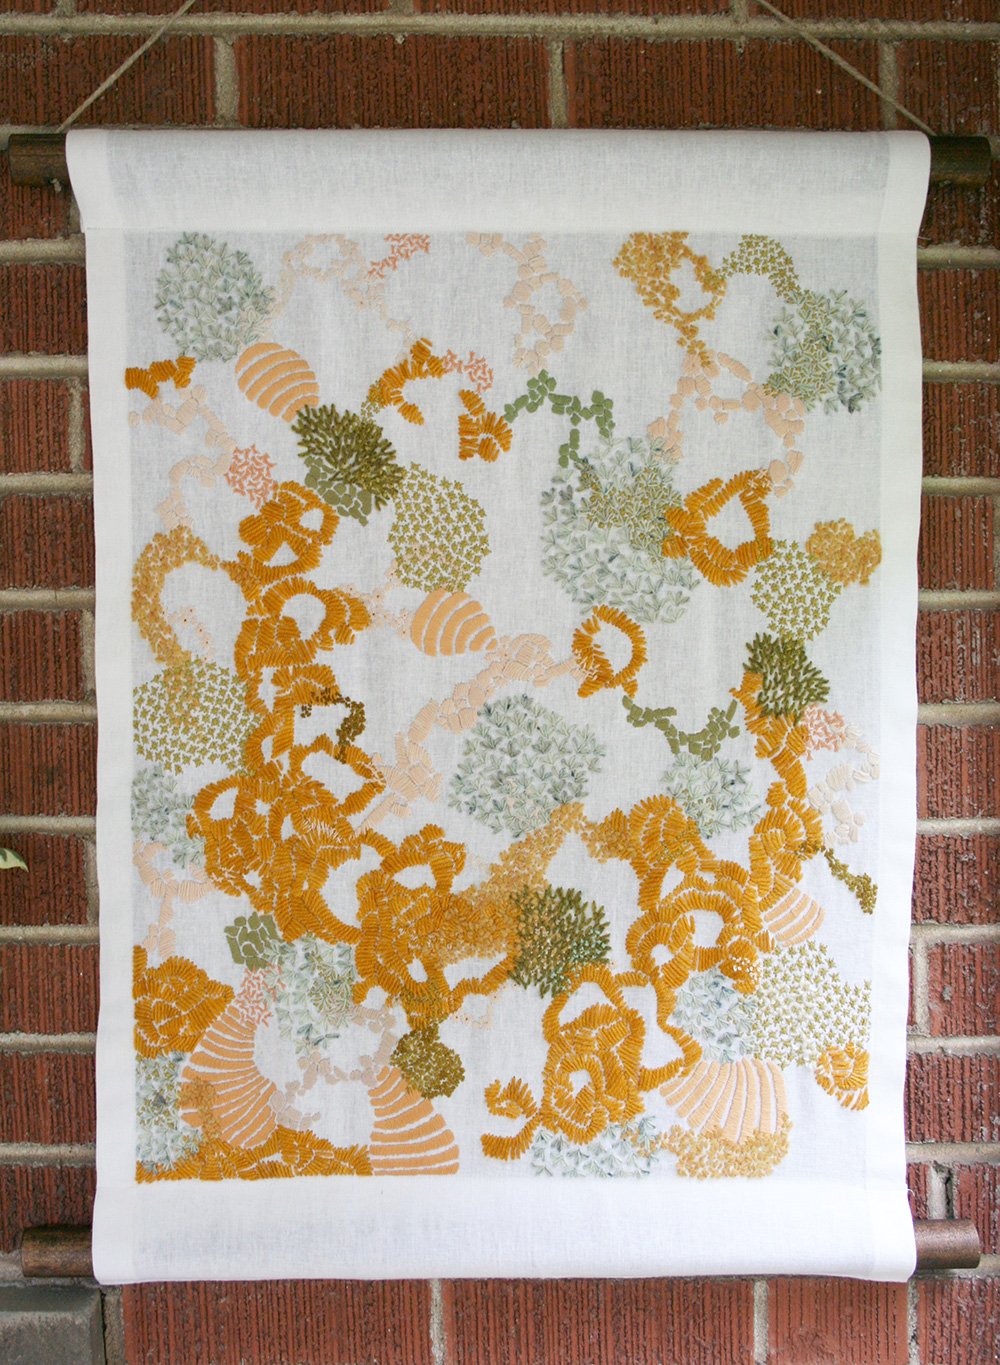 Gold, Grass and Peach Embroidered Tapestry by Amanda Farquharson